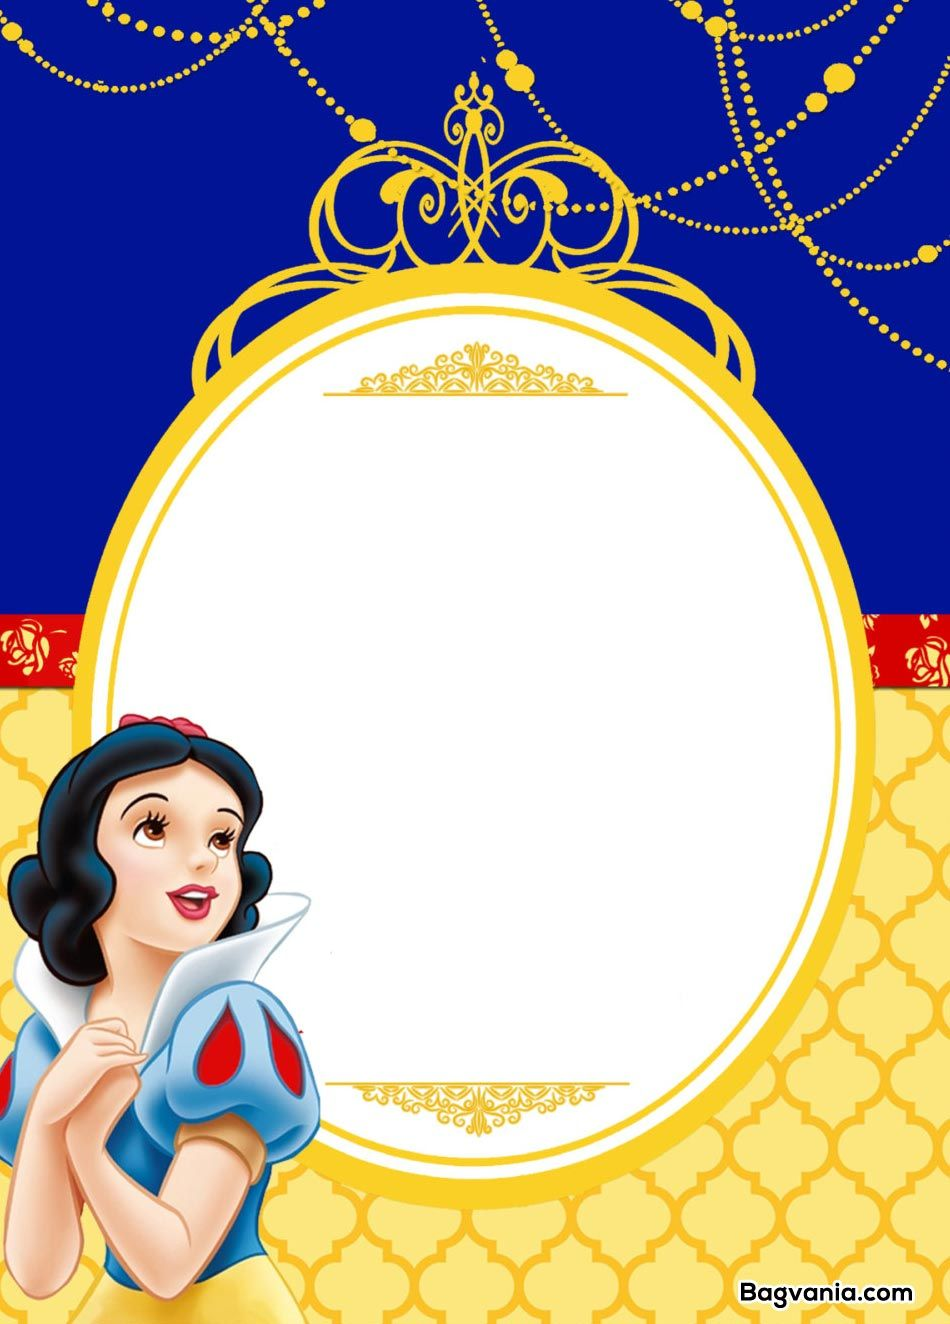 Free Printable Snow White Birthday Invitations – Bagvania FREE